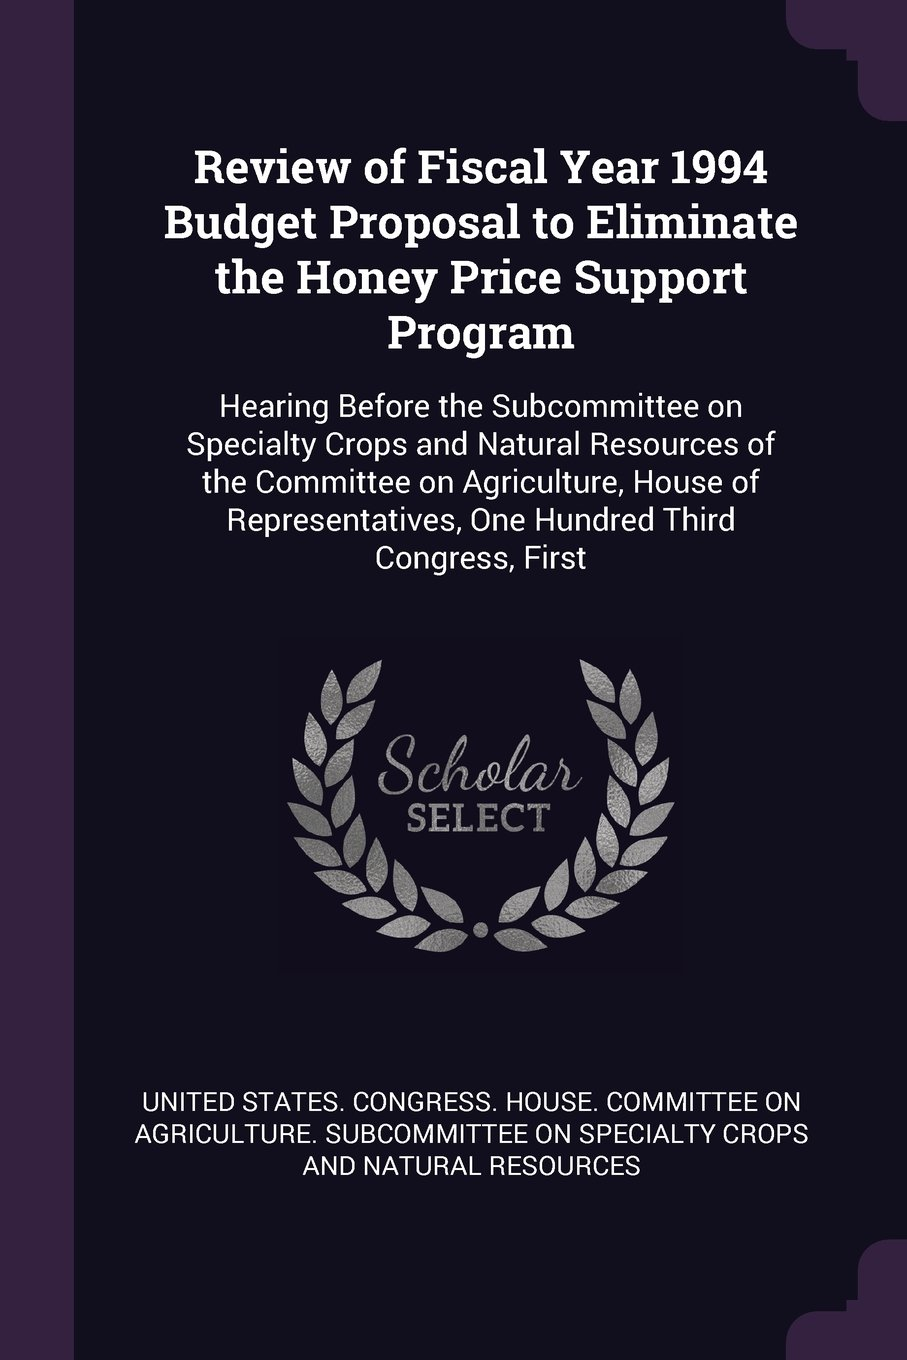 Download Review of Fiscal Year 1994 Budget Proposal to Eliminate the Honey Price Support Program: Hearing Before the Subcommittee on Specialty Crops and ... One Hundred Third Congress, First PDF